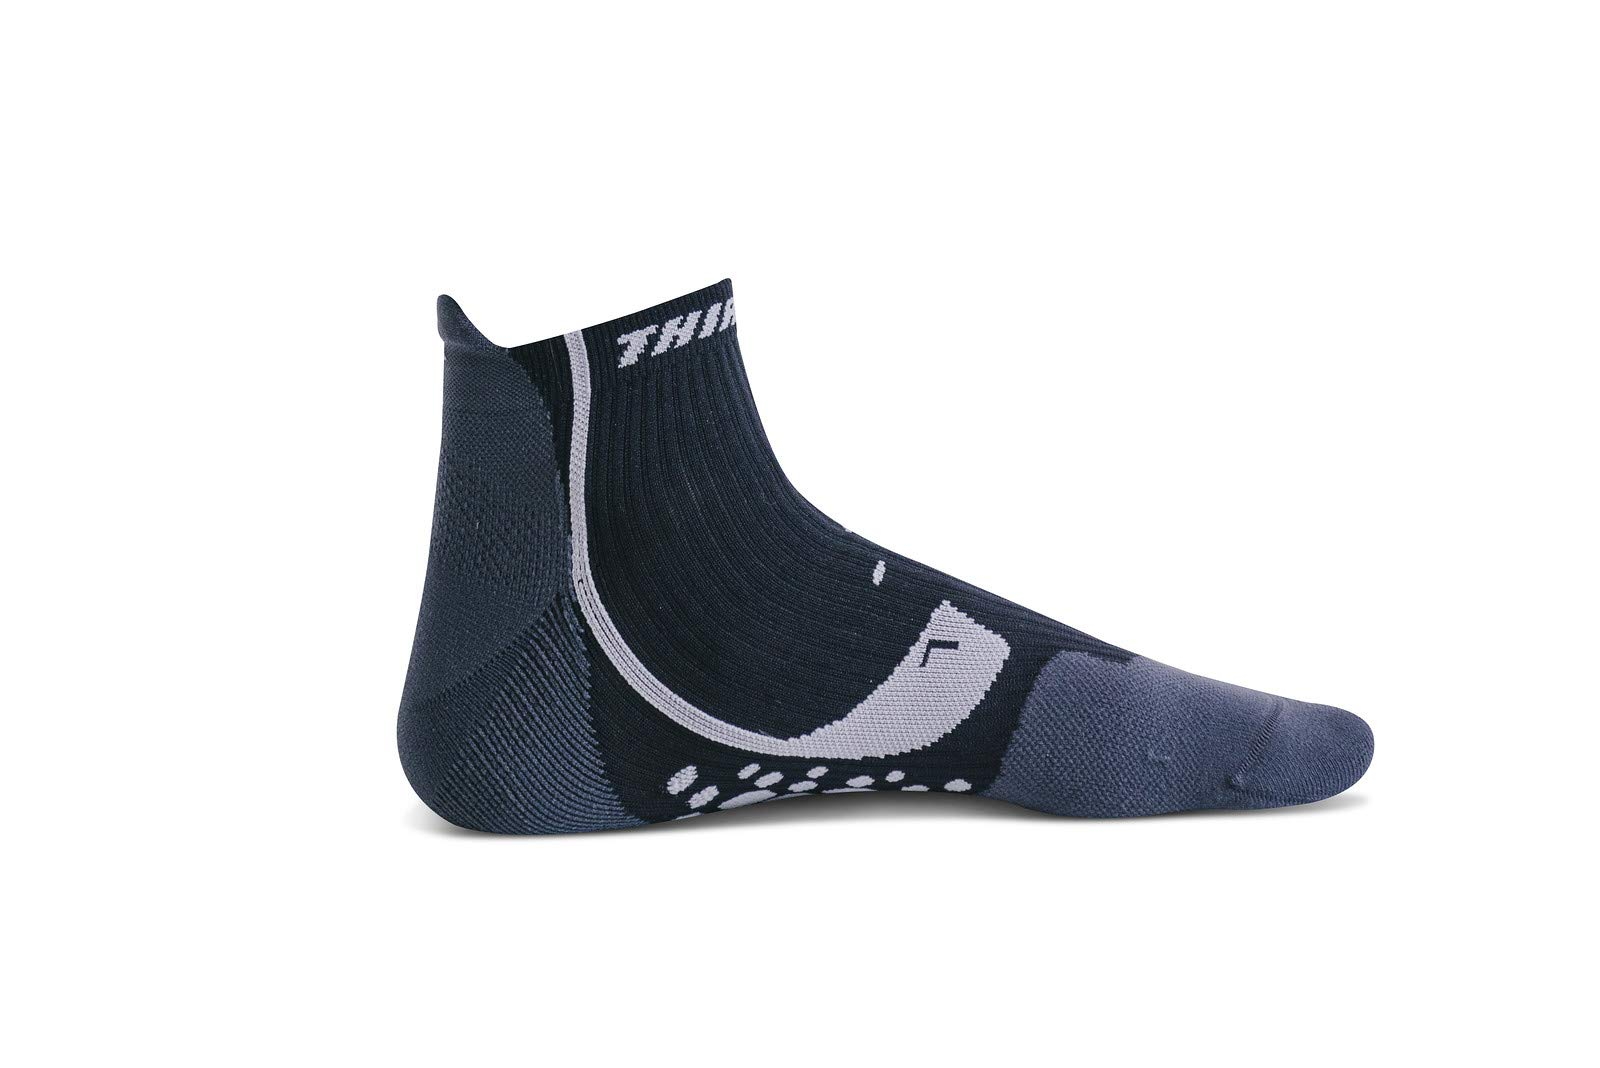 Thirty 48 Compression Low-Cut Running Socks for Men and Women (Small - Women 5-6.5 // Men 6-7.5, [1 Pair] Black/Gray)